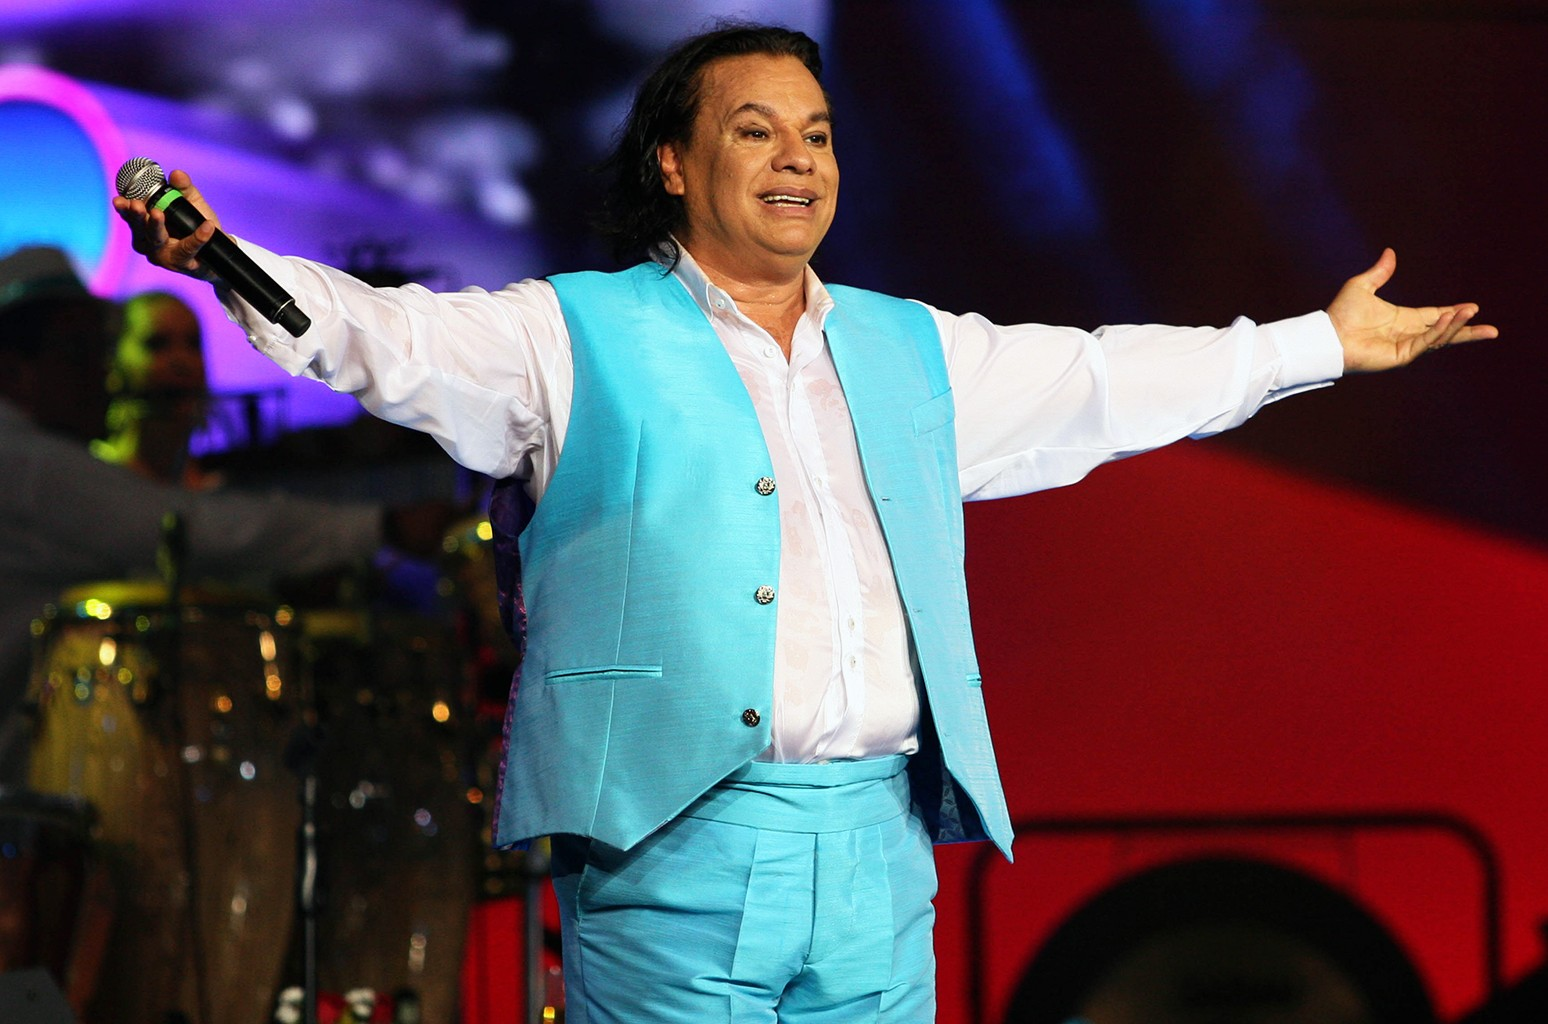 Halloween Costume De Ana Gabriel 2020 Juan Gabriel Tribute Expected to Draw 700,000 Fans in Mexico City